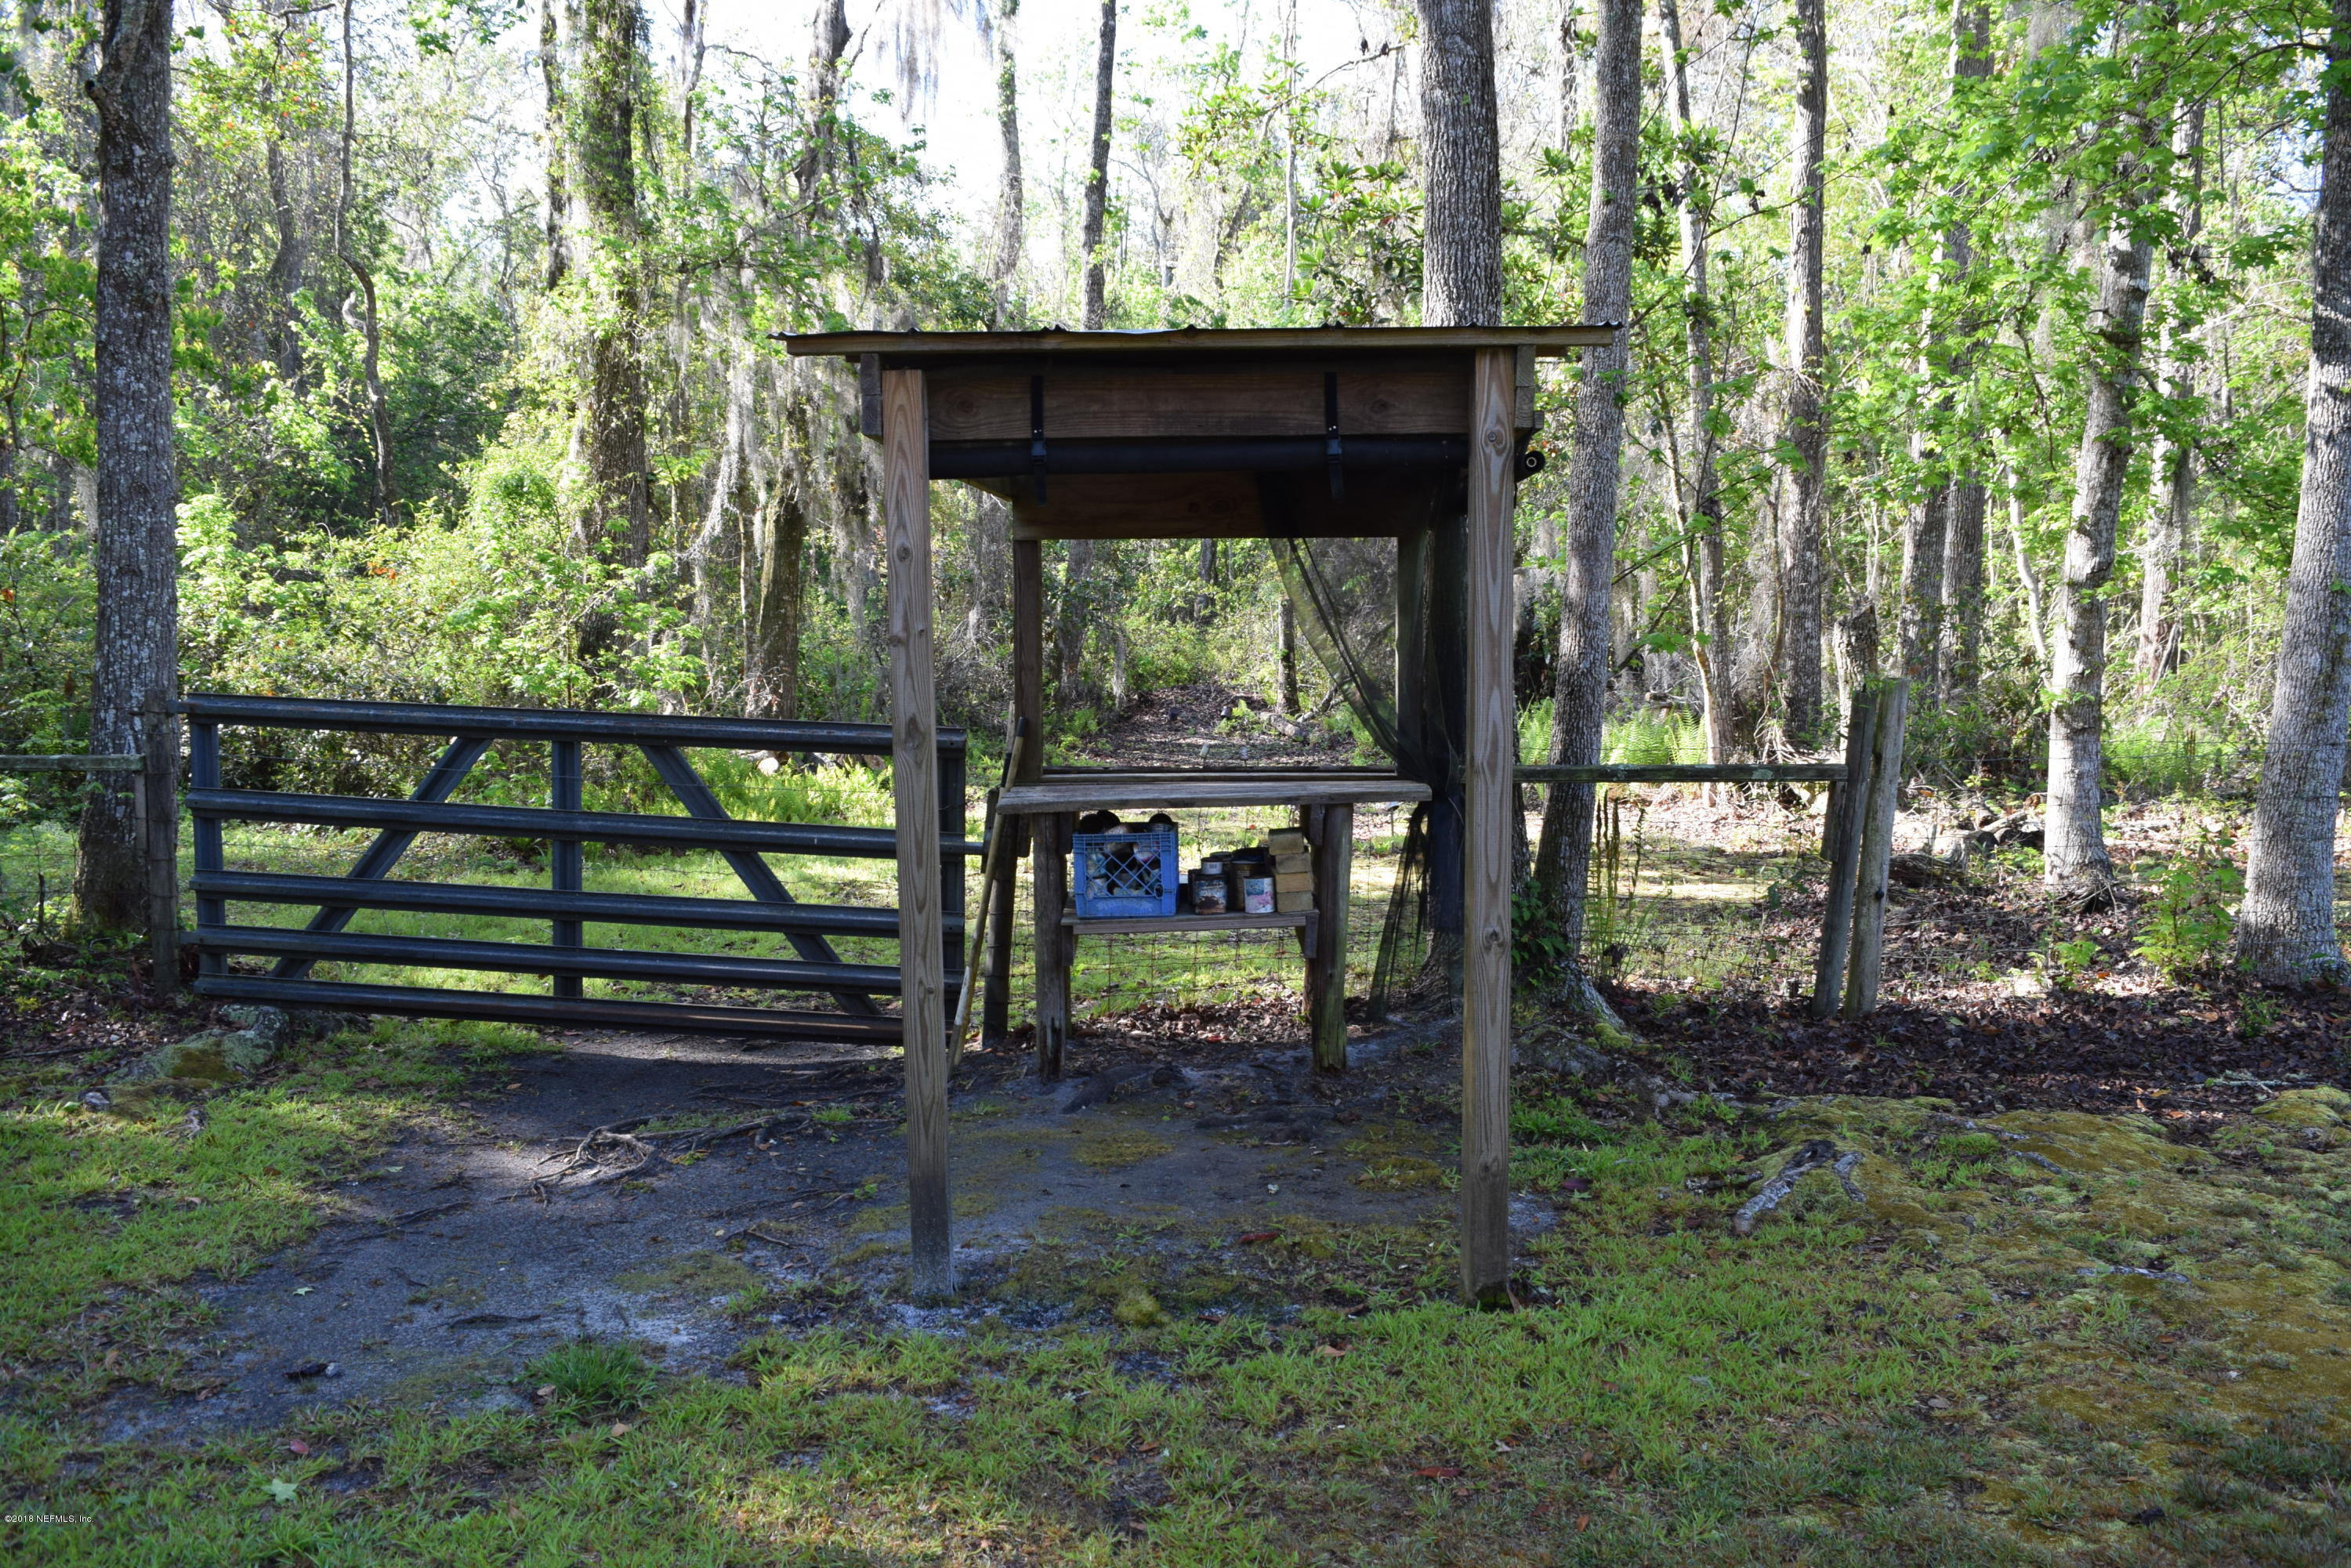 86162-PAGES-DAIRY-YULEE-FL-32097